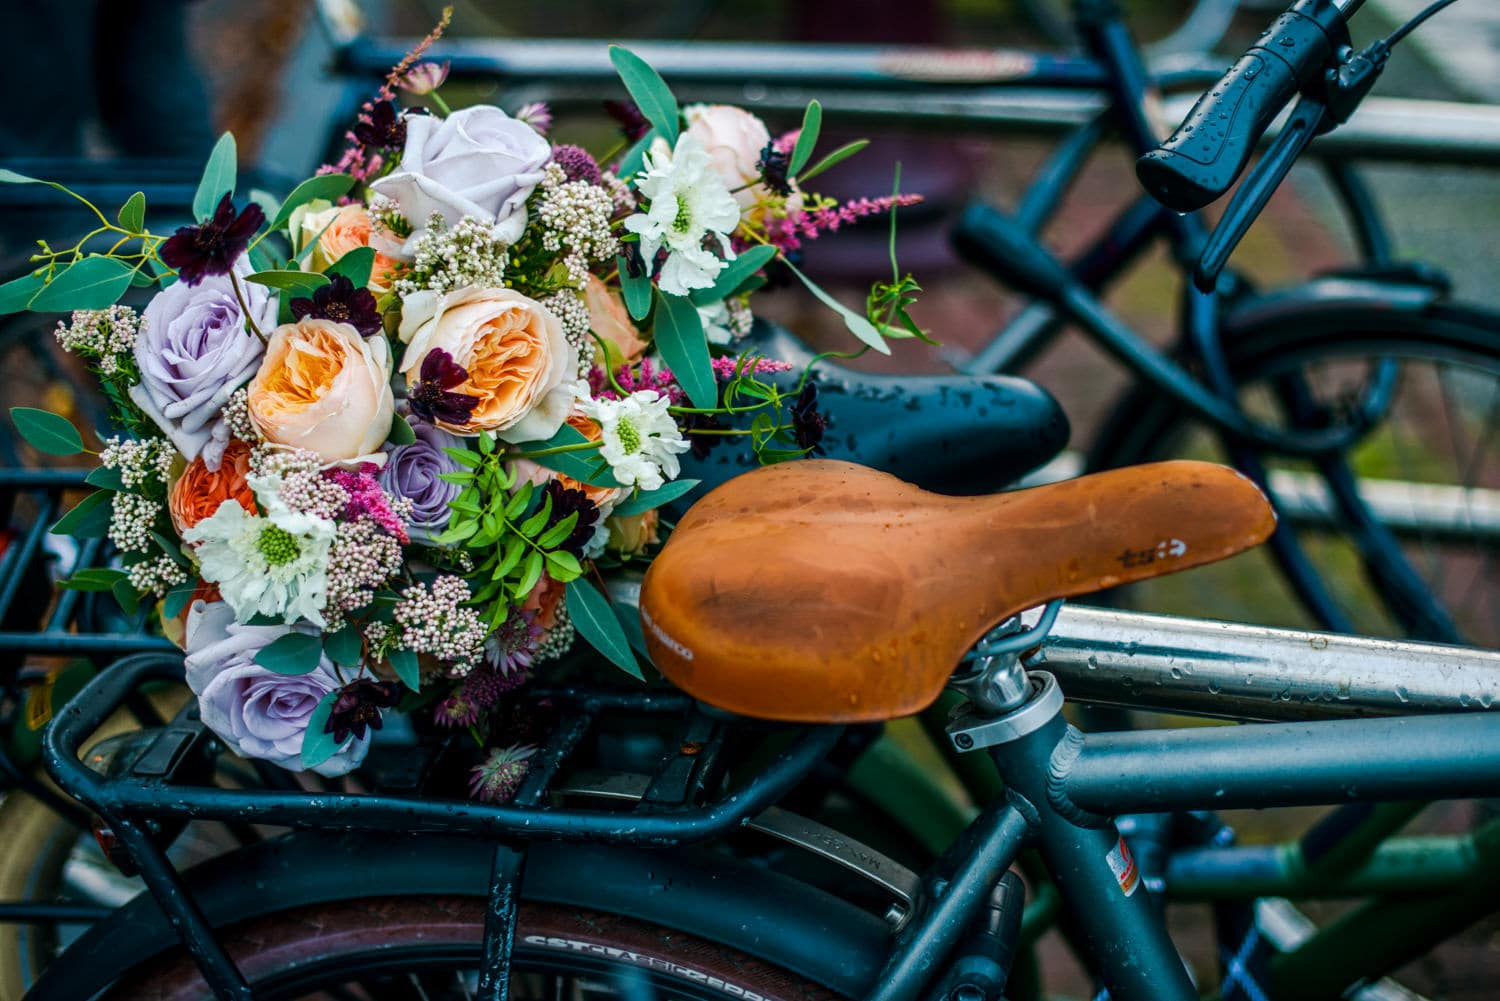 wedding bouquet on Amsterdam bikes